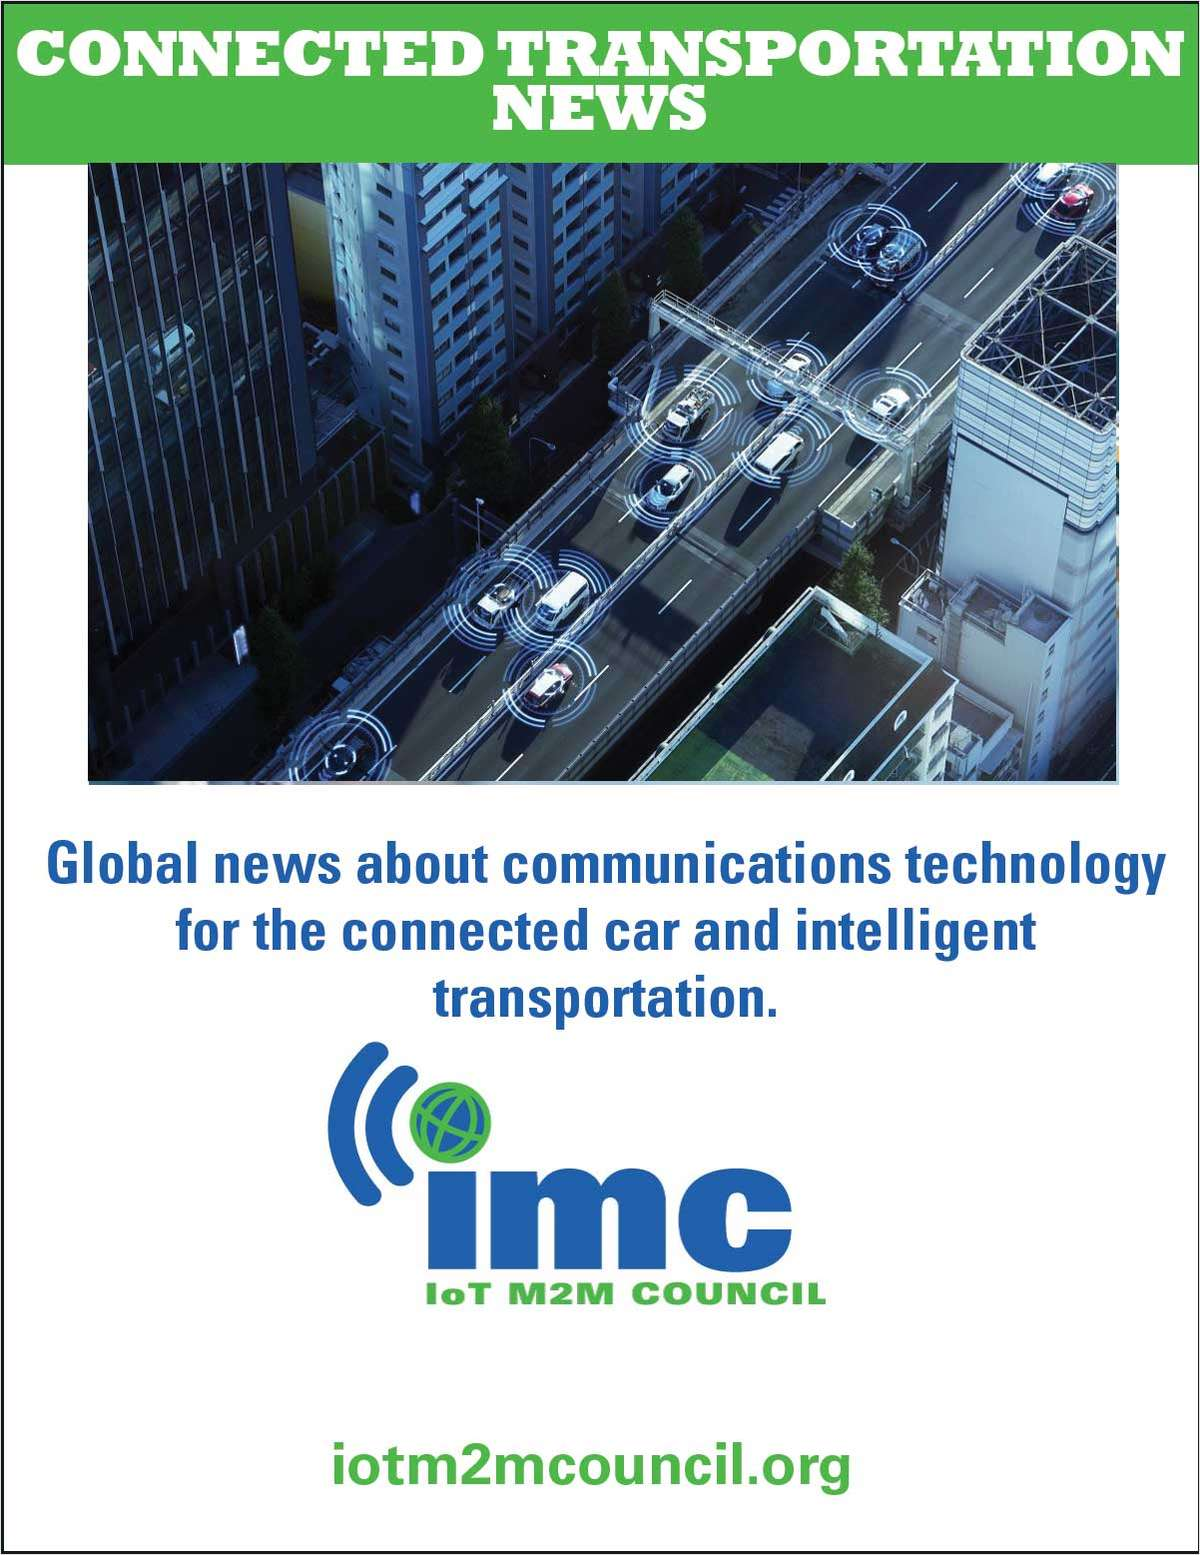 CONNECTED TRANSPORTATION NEWS